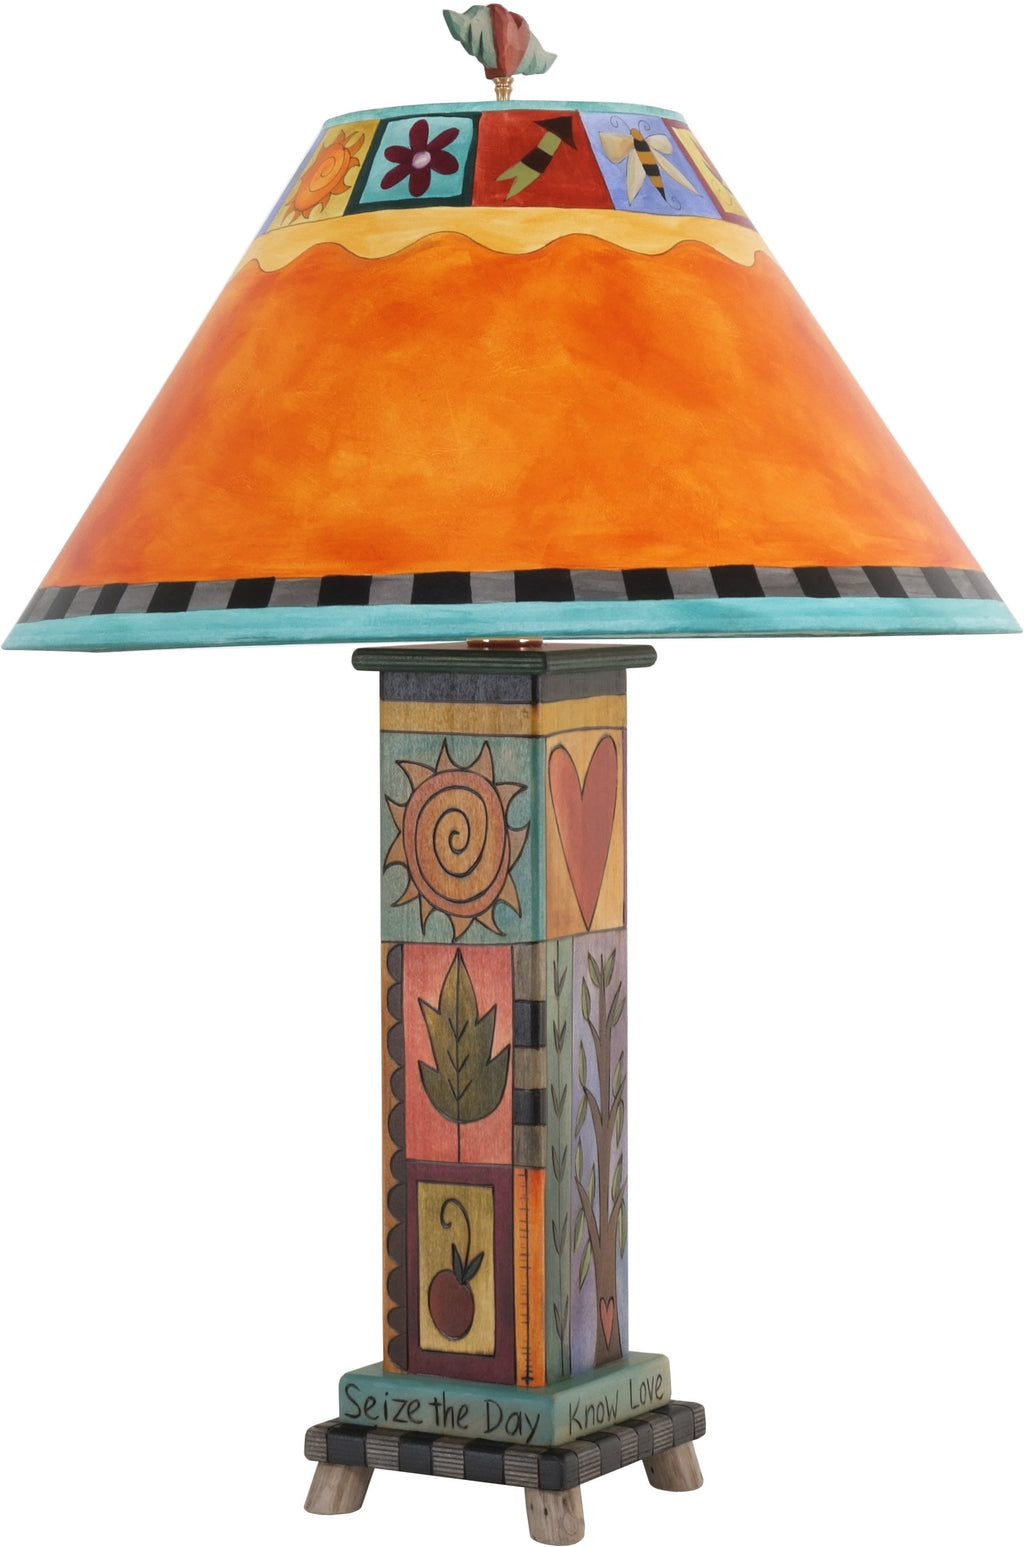 Box Table Lamp –  Contemporary and eclectic table lamp with colorful elements and block icons